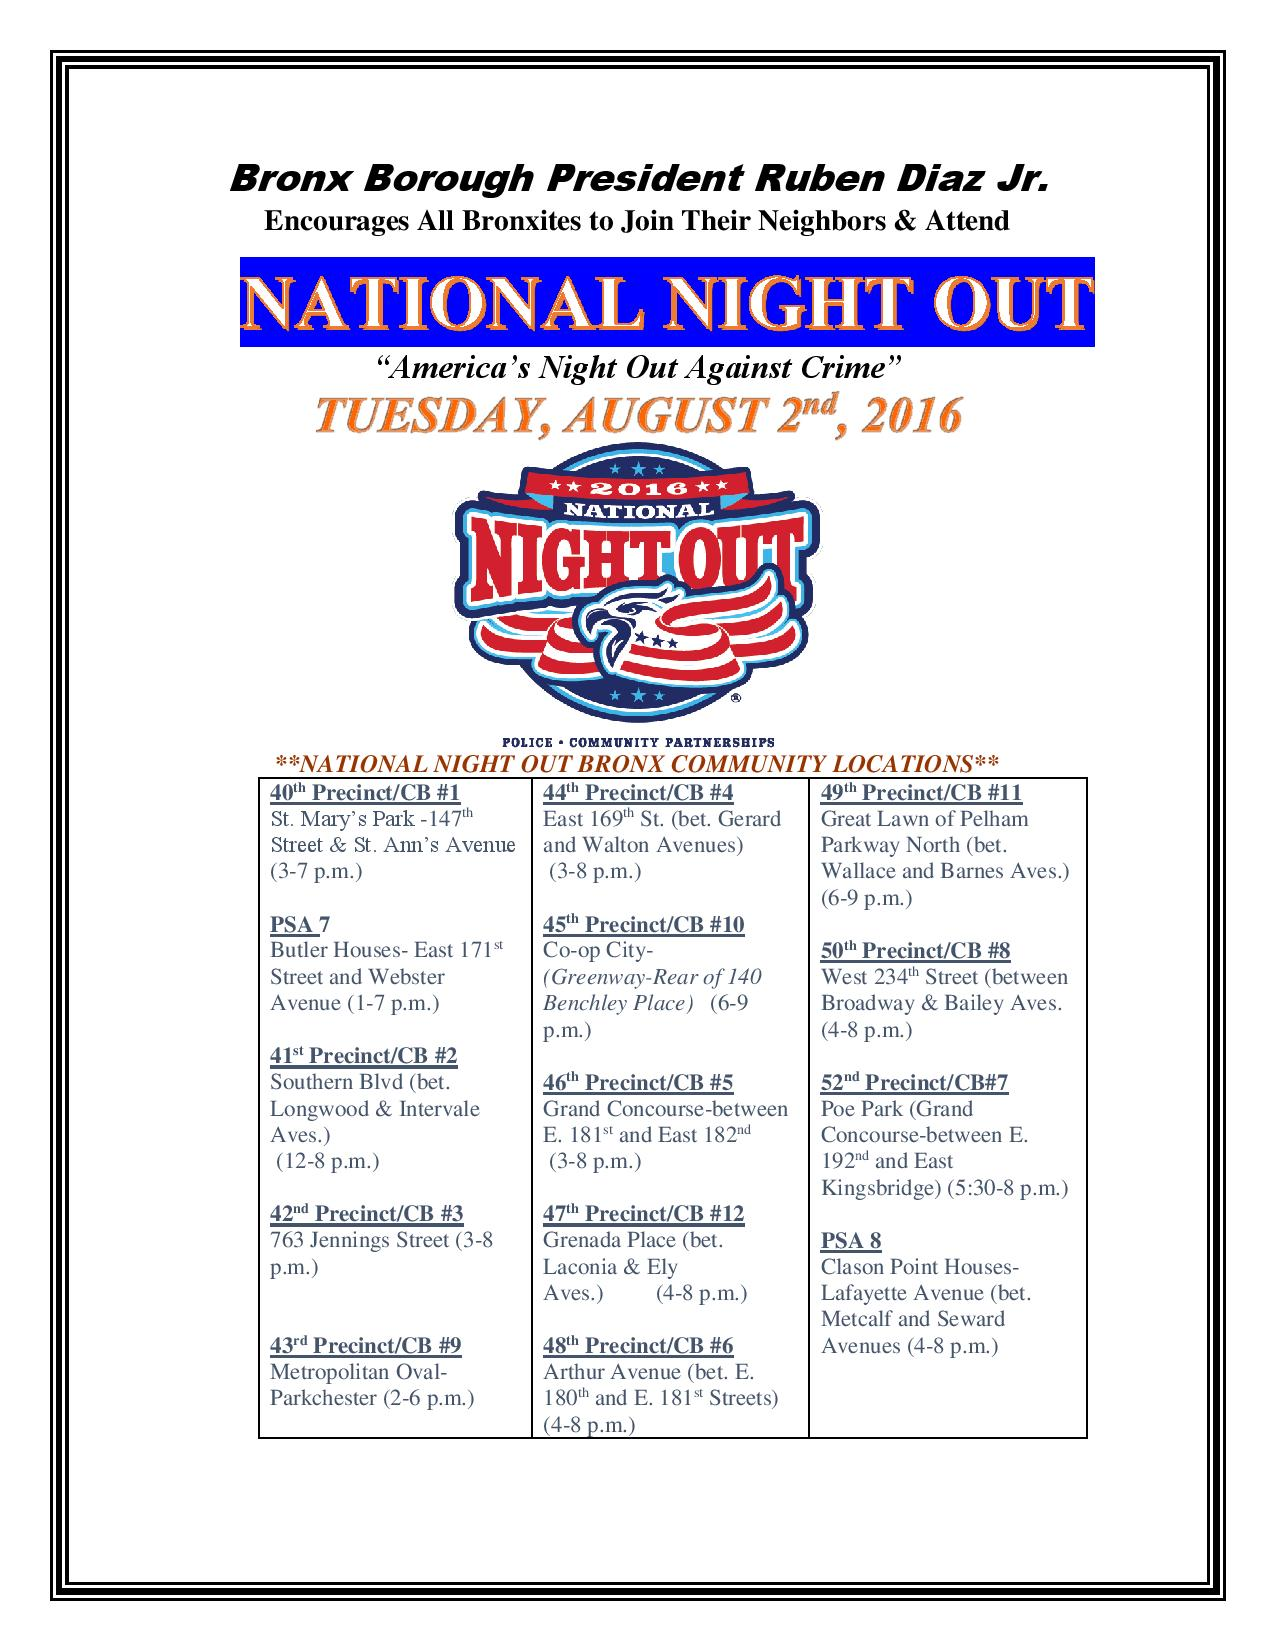 National Night Out in the Bronx